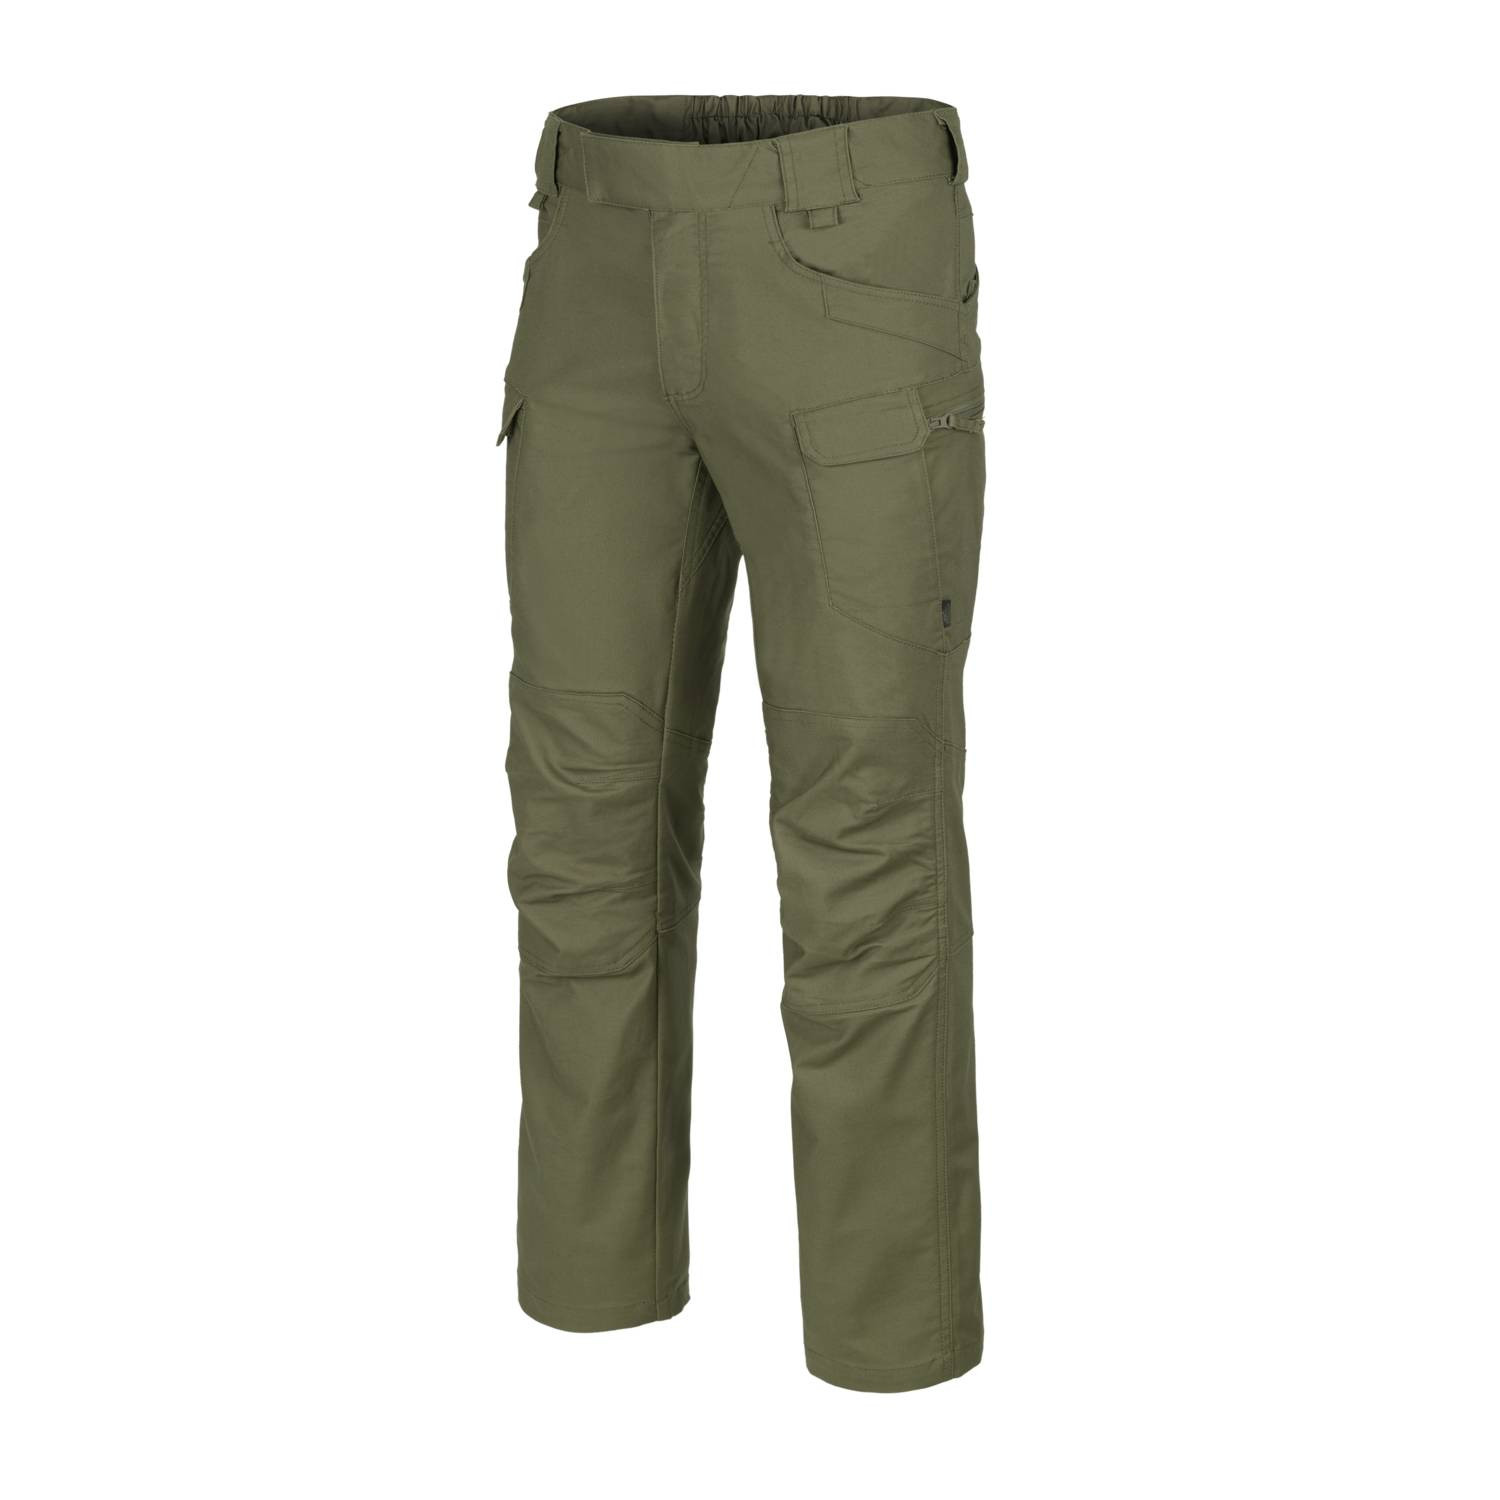 Nohavice URBAN TACTICAL OLIVE GREEN